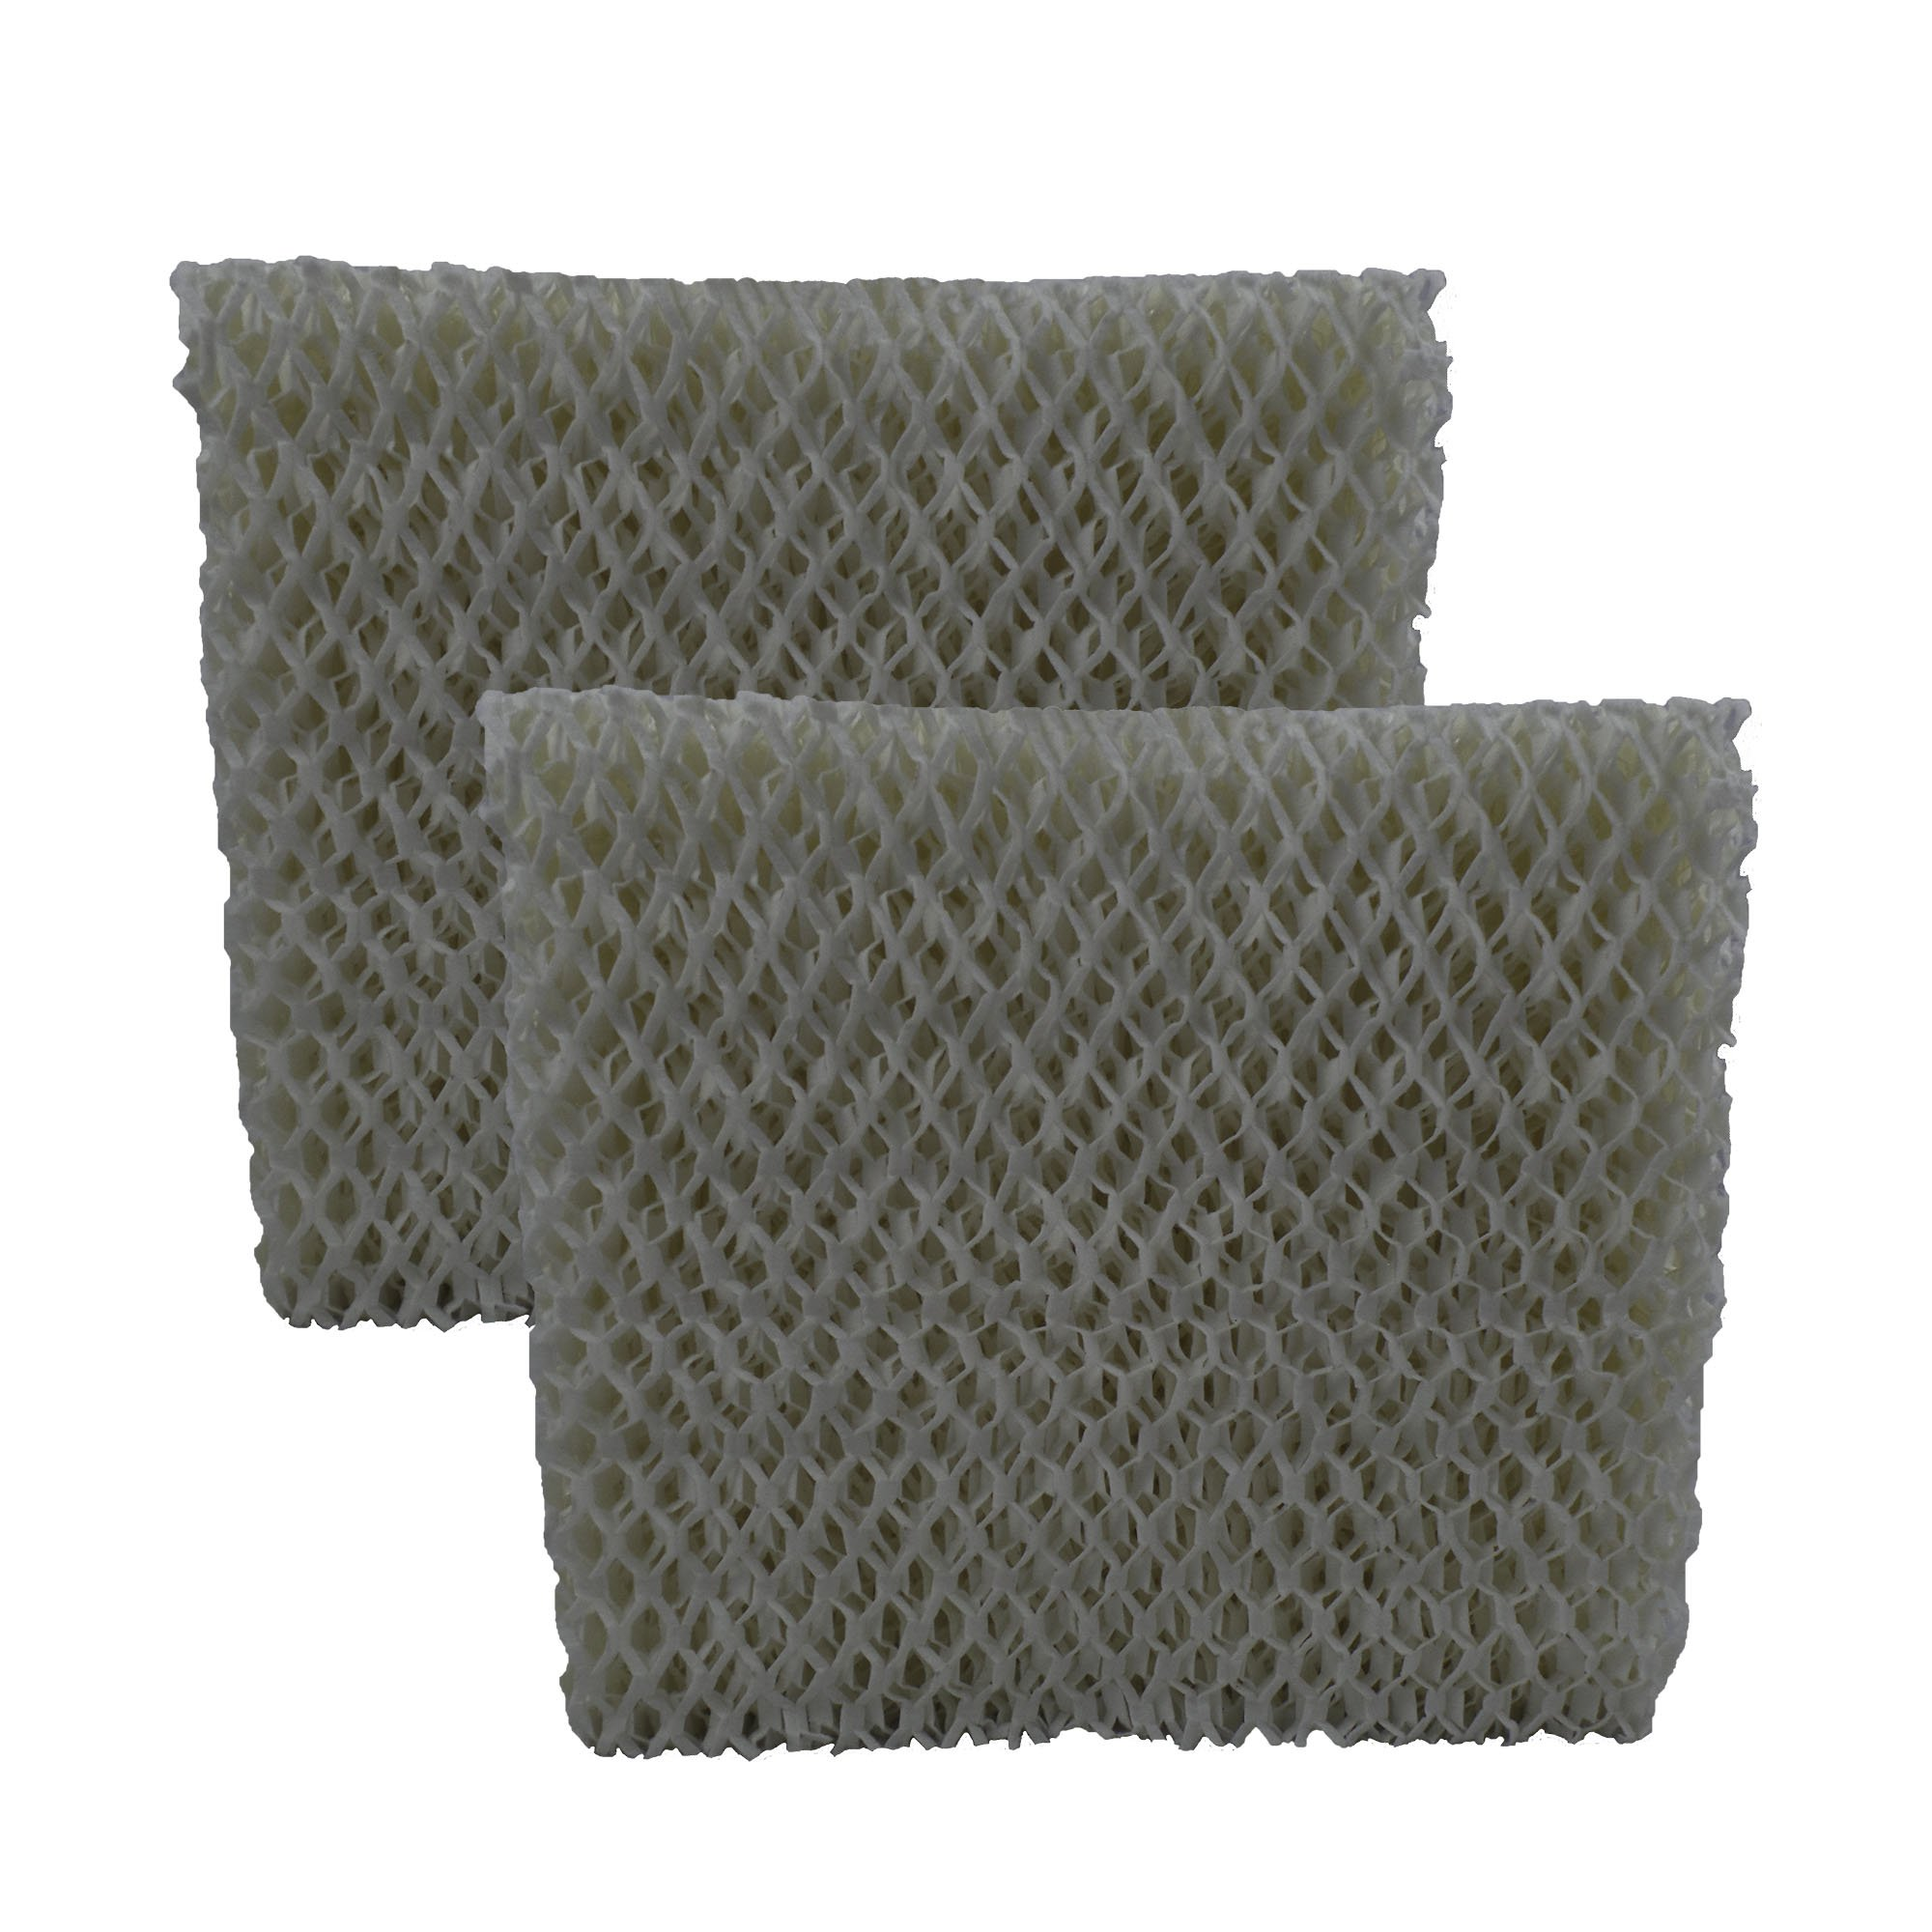 Air Filter Factory 2-PACK Compatible Replacement For Duracraft DH821, DH822, DH823, DH824, DH836, DH837, DH8378 Humidifier Filter by Air Filter Factory (Image #1)